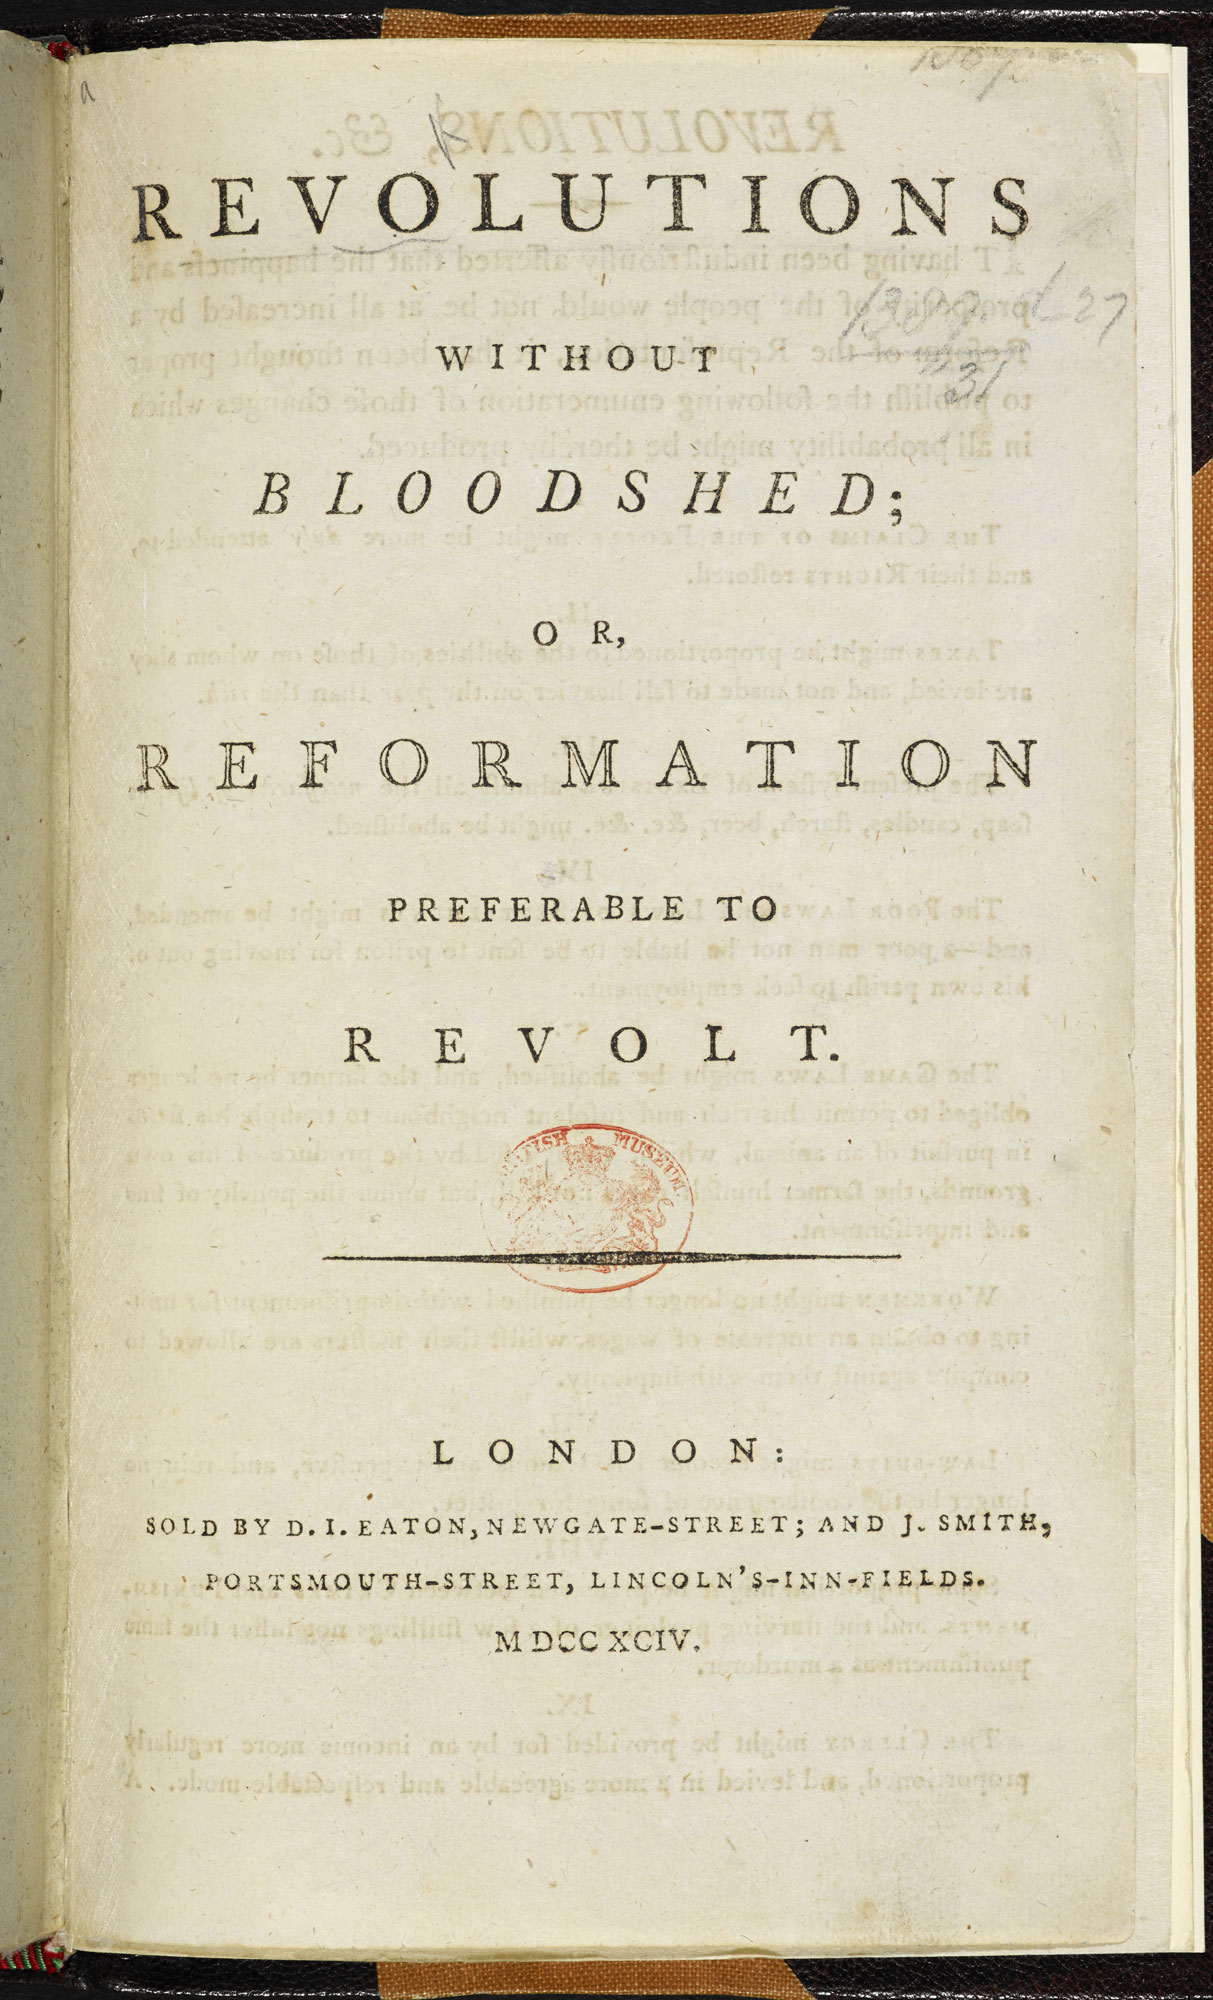 Revolutions without Bloodshed [page: title page]